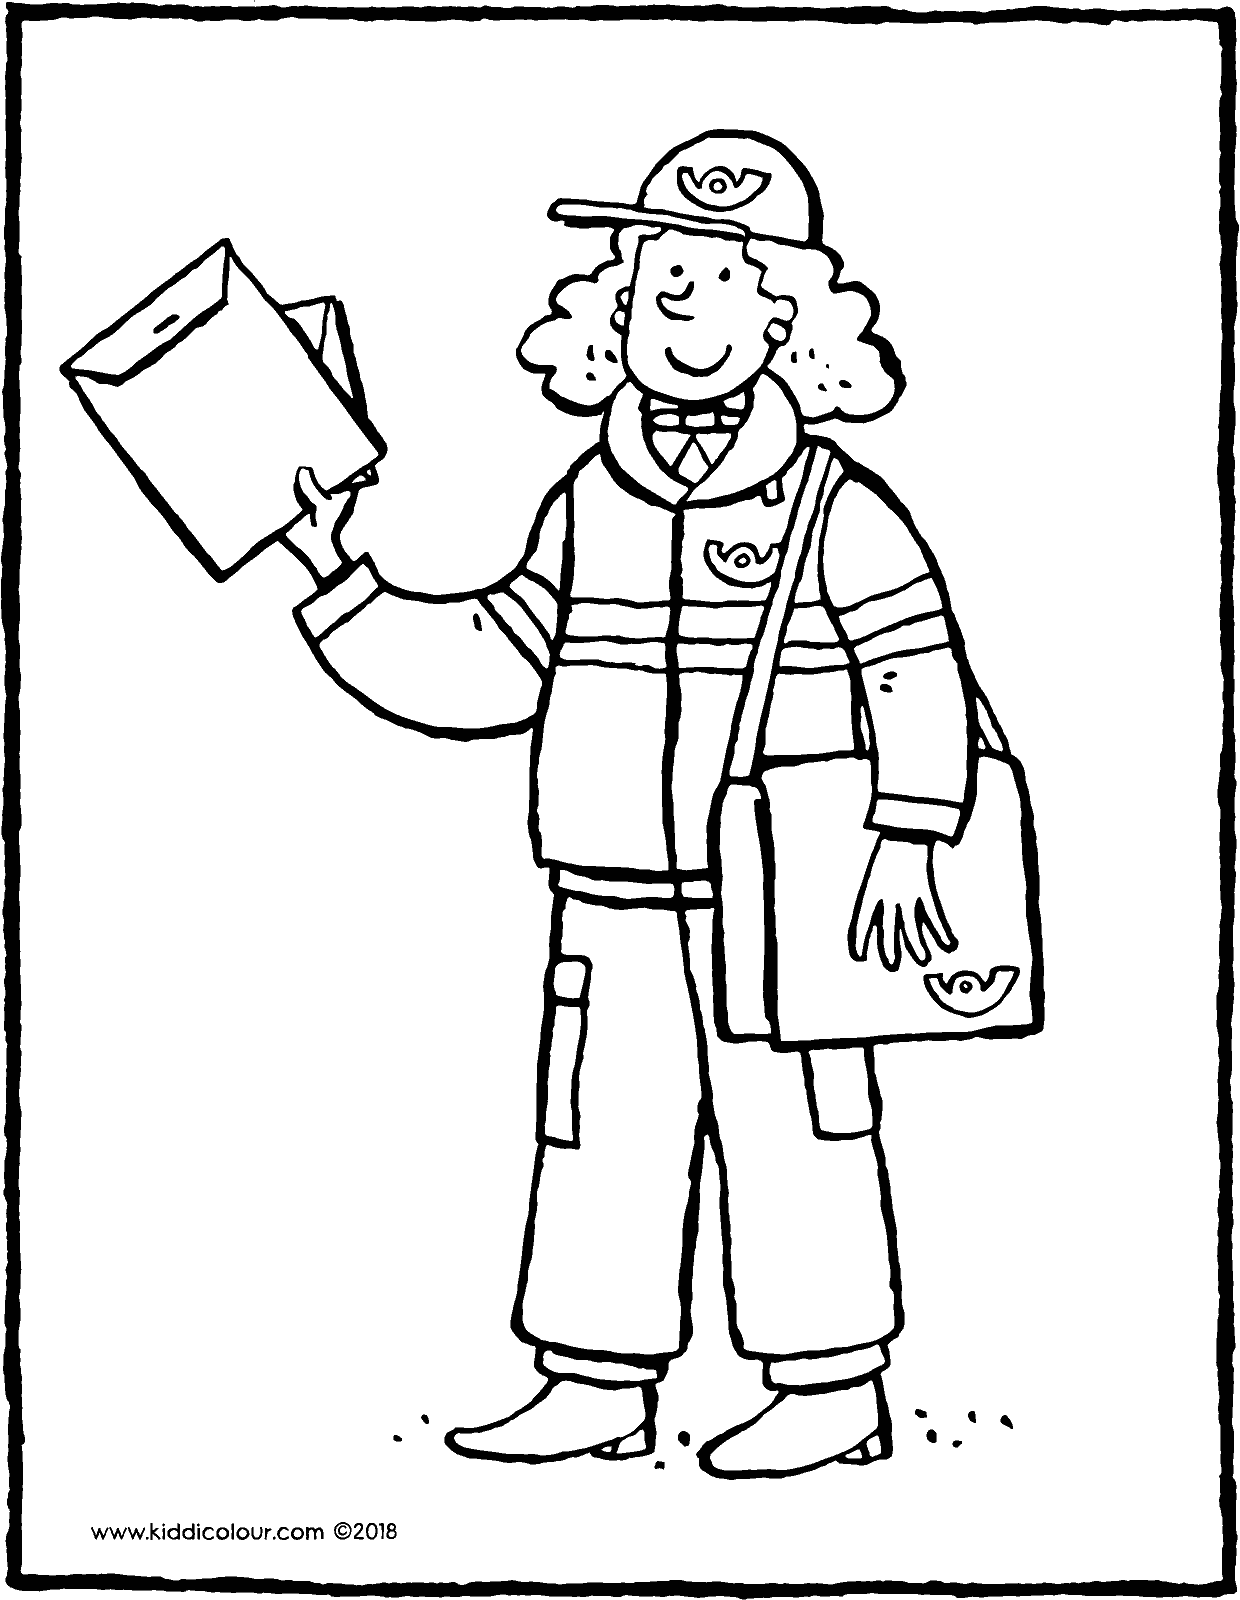 le facteur distribue le courrier coloriage dessin image à colorier 01V